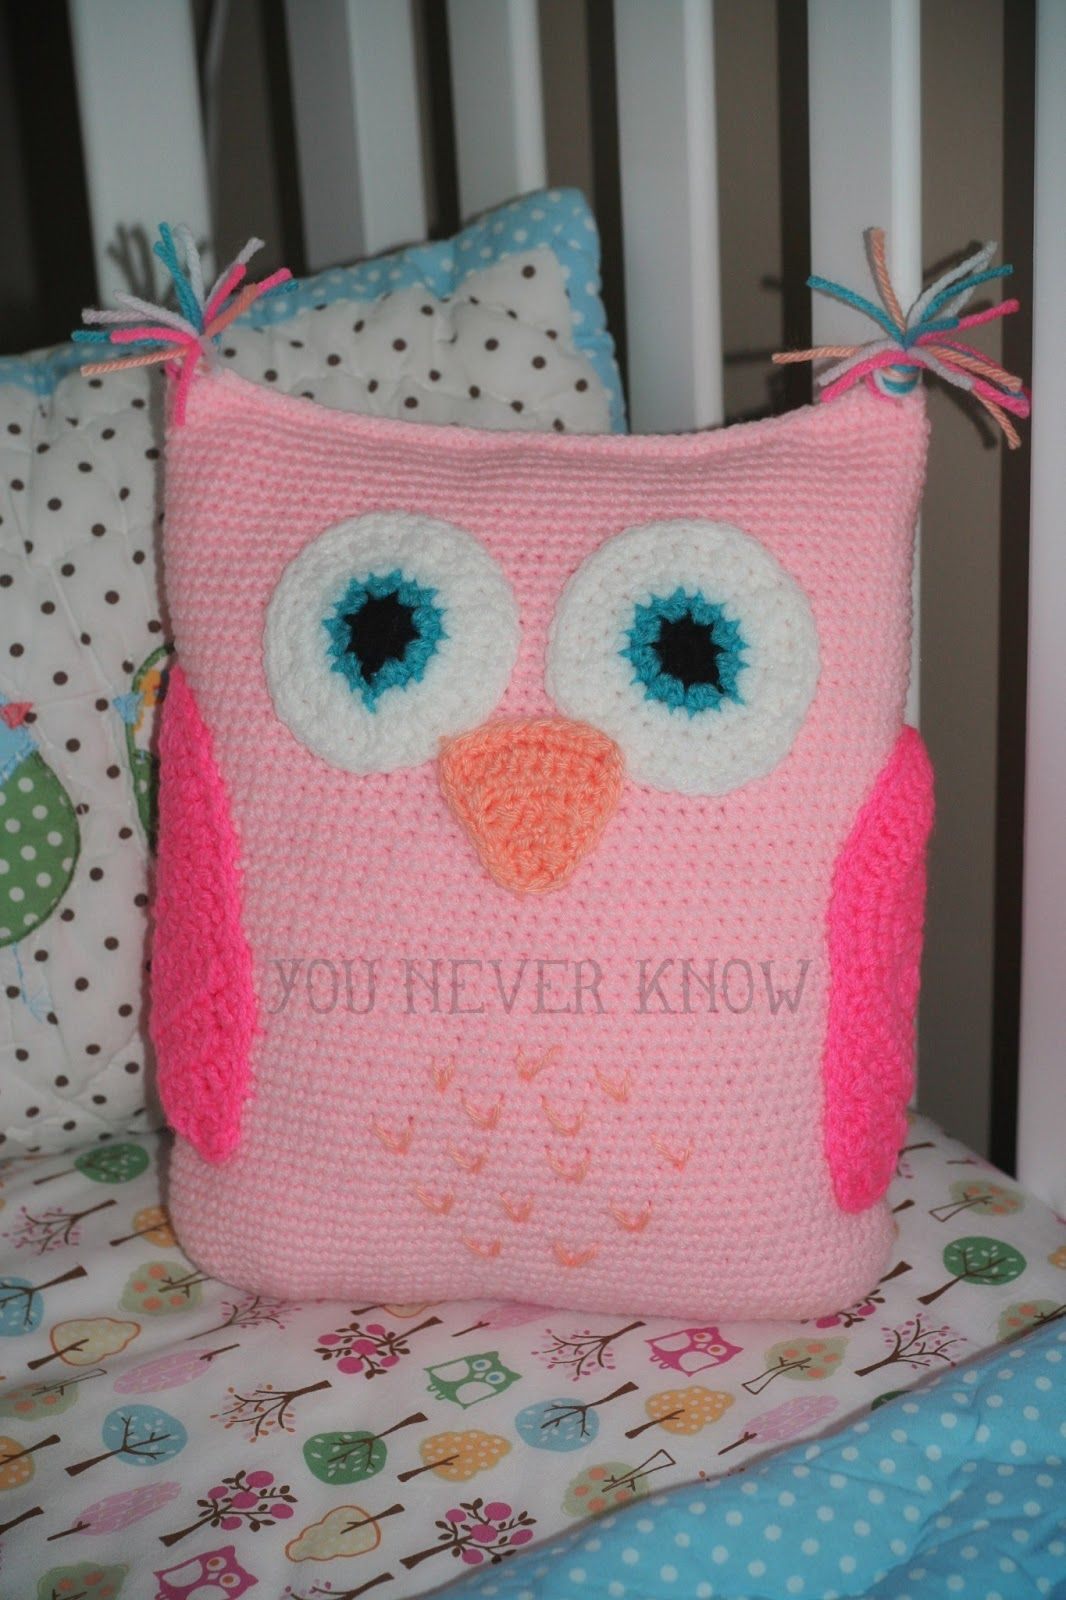 You never know blog free owl pattern crochet and sewing you never know by andrea vanhooser womack claras owl pillow free crochet pattern bankloansurffo Images